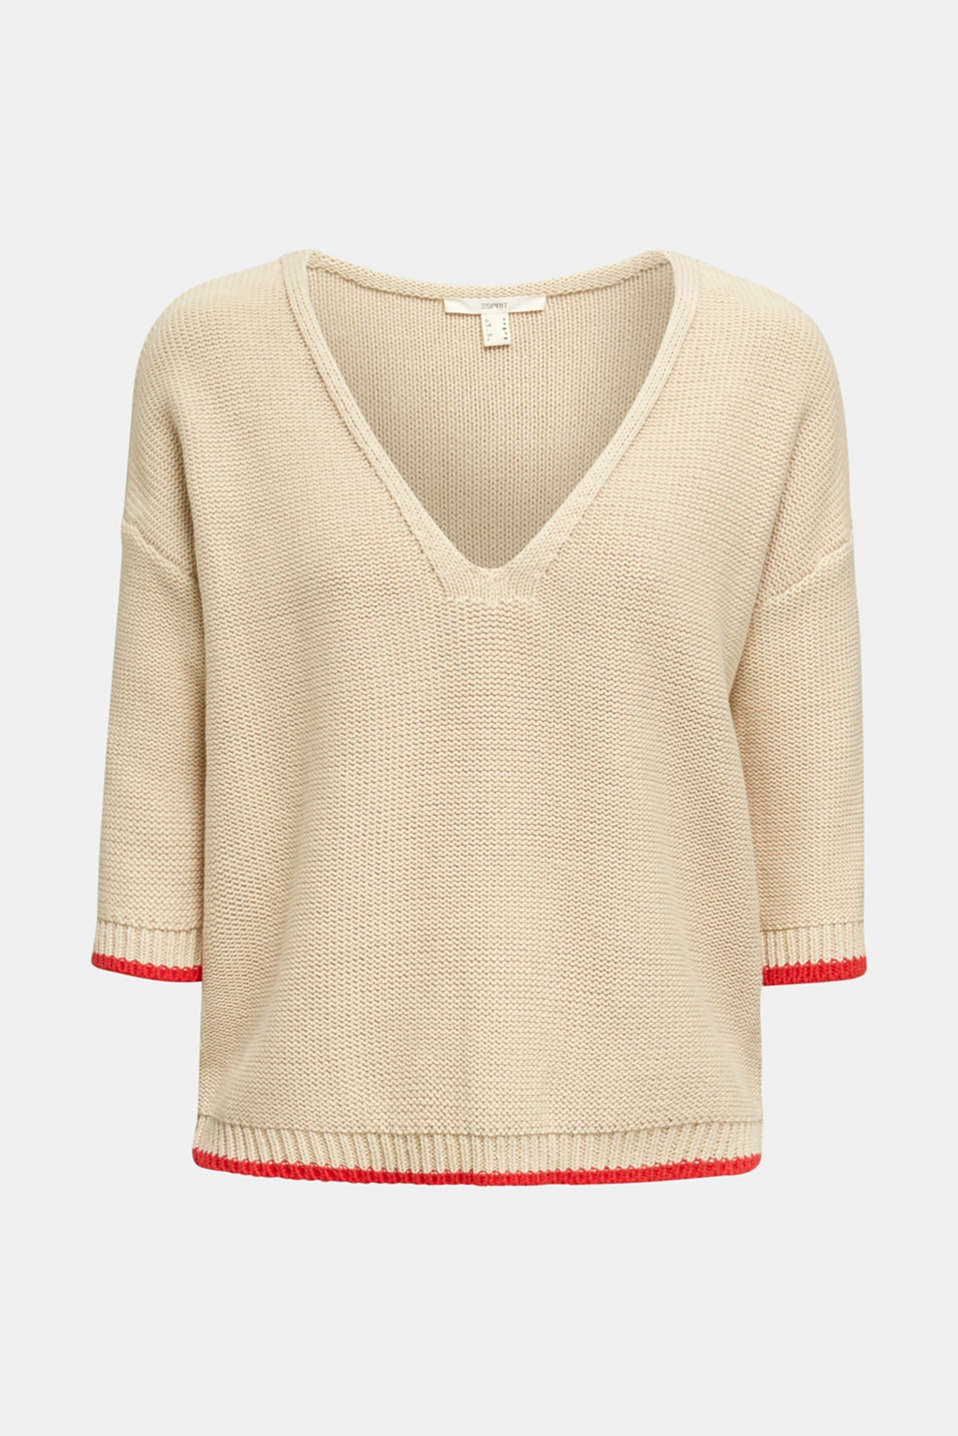 Jumper with a V-neck, 100% cotton, LIGHT BEIGE, detail image number 6